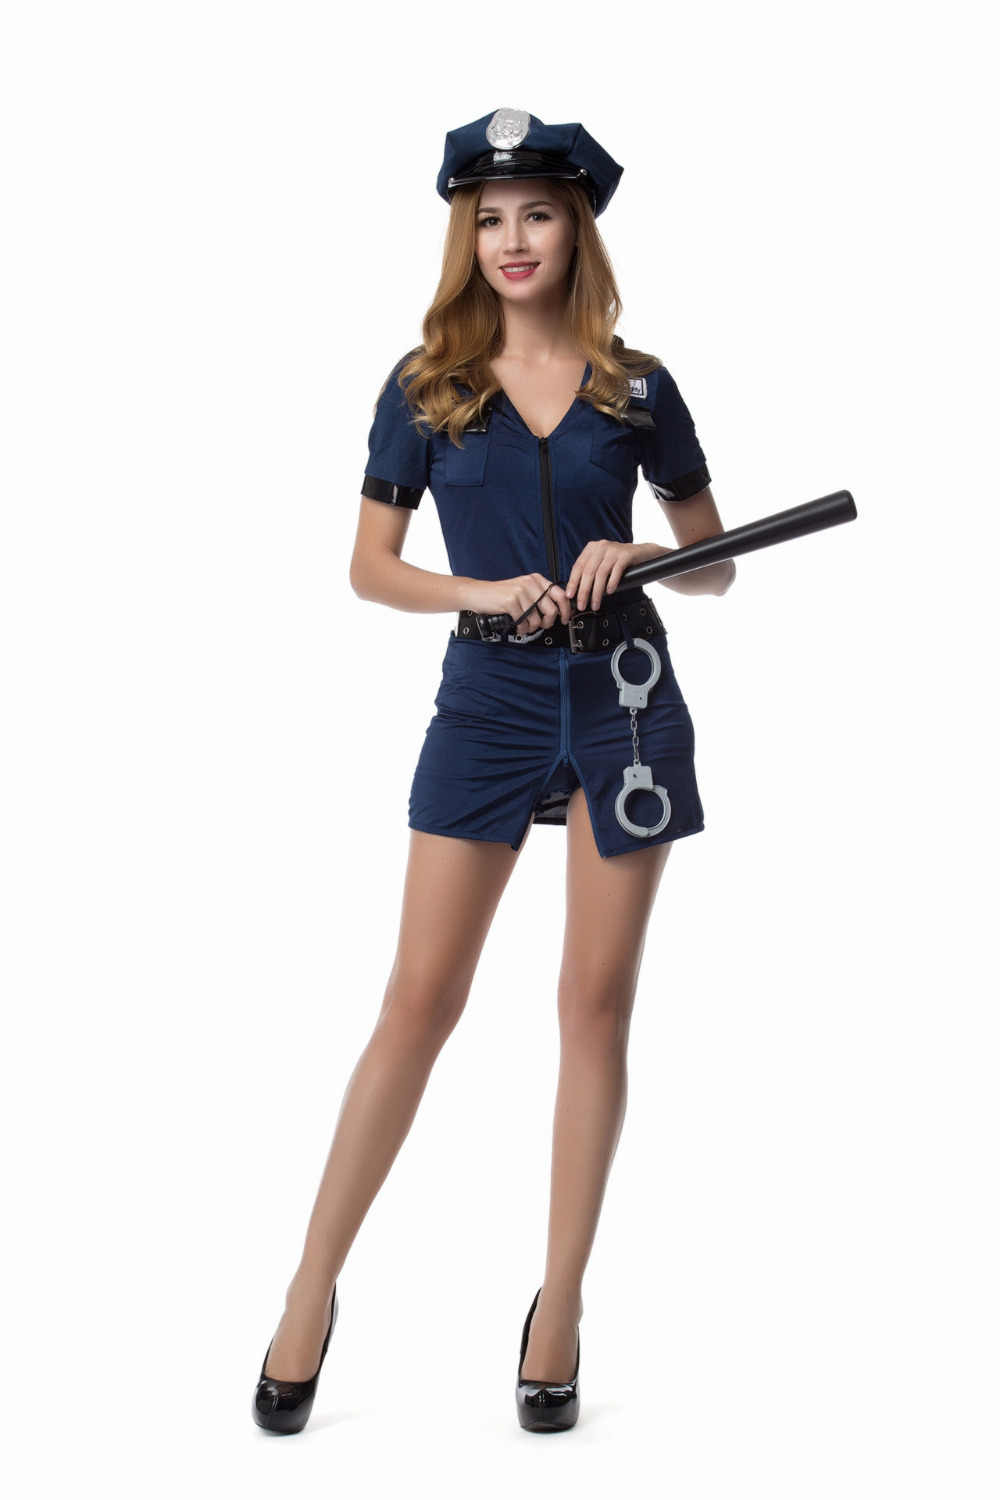 ... M-XXL Adult Womens Sexy Blue Halloween Party Police Uniform Cosplay  Policewoman Costumes Outfit Plus ... ae54ee419d0e